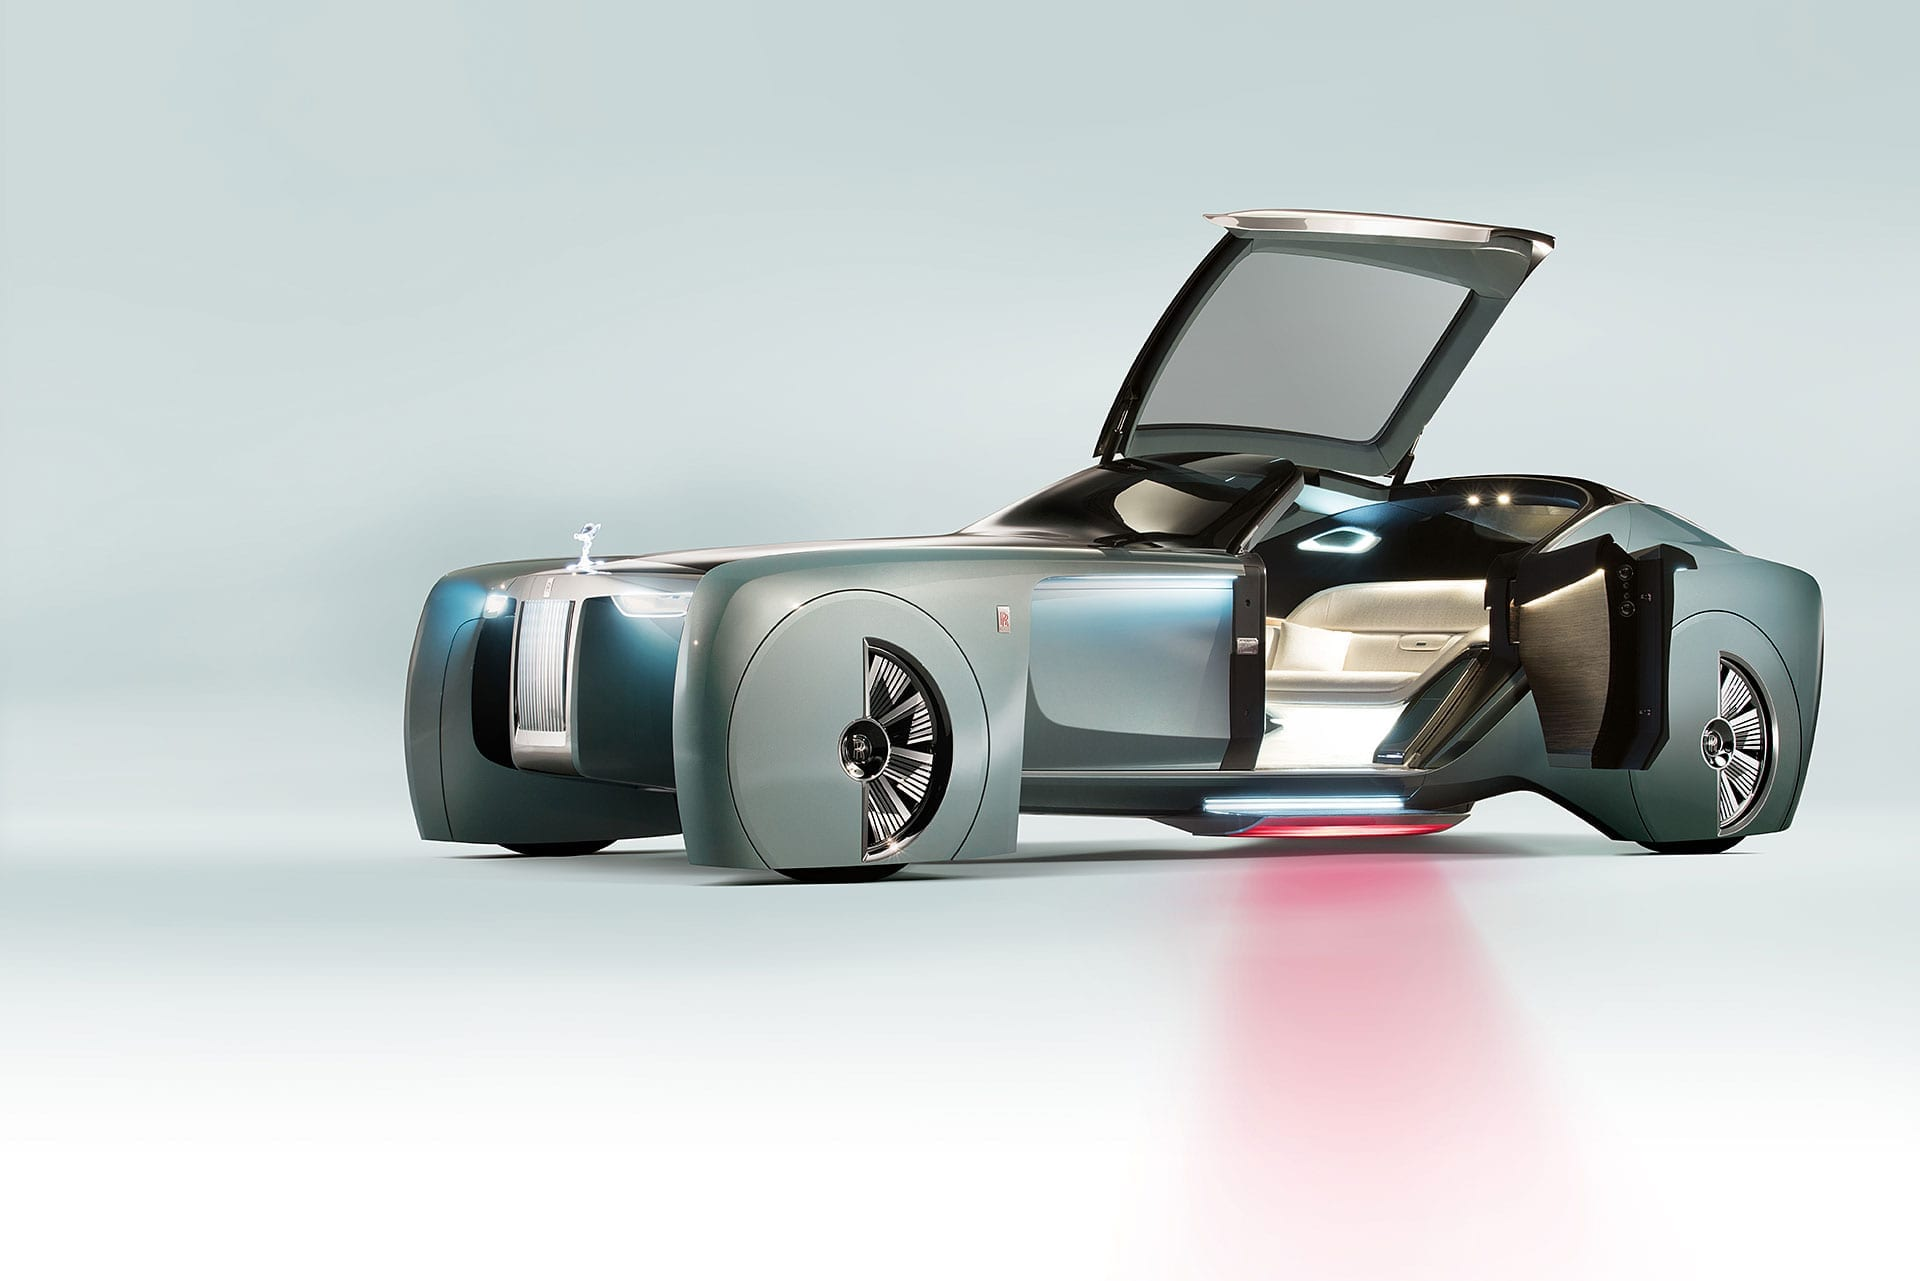 The Future: Concept vehicles or reality? - Rolls Royce Vision Next 100 103EX 1